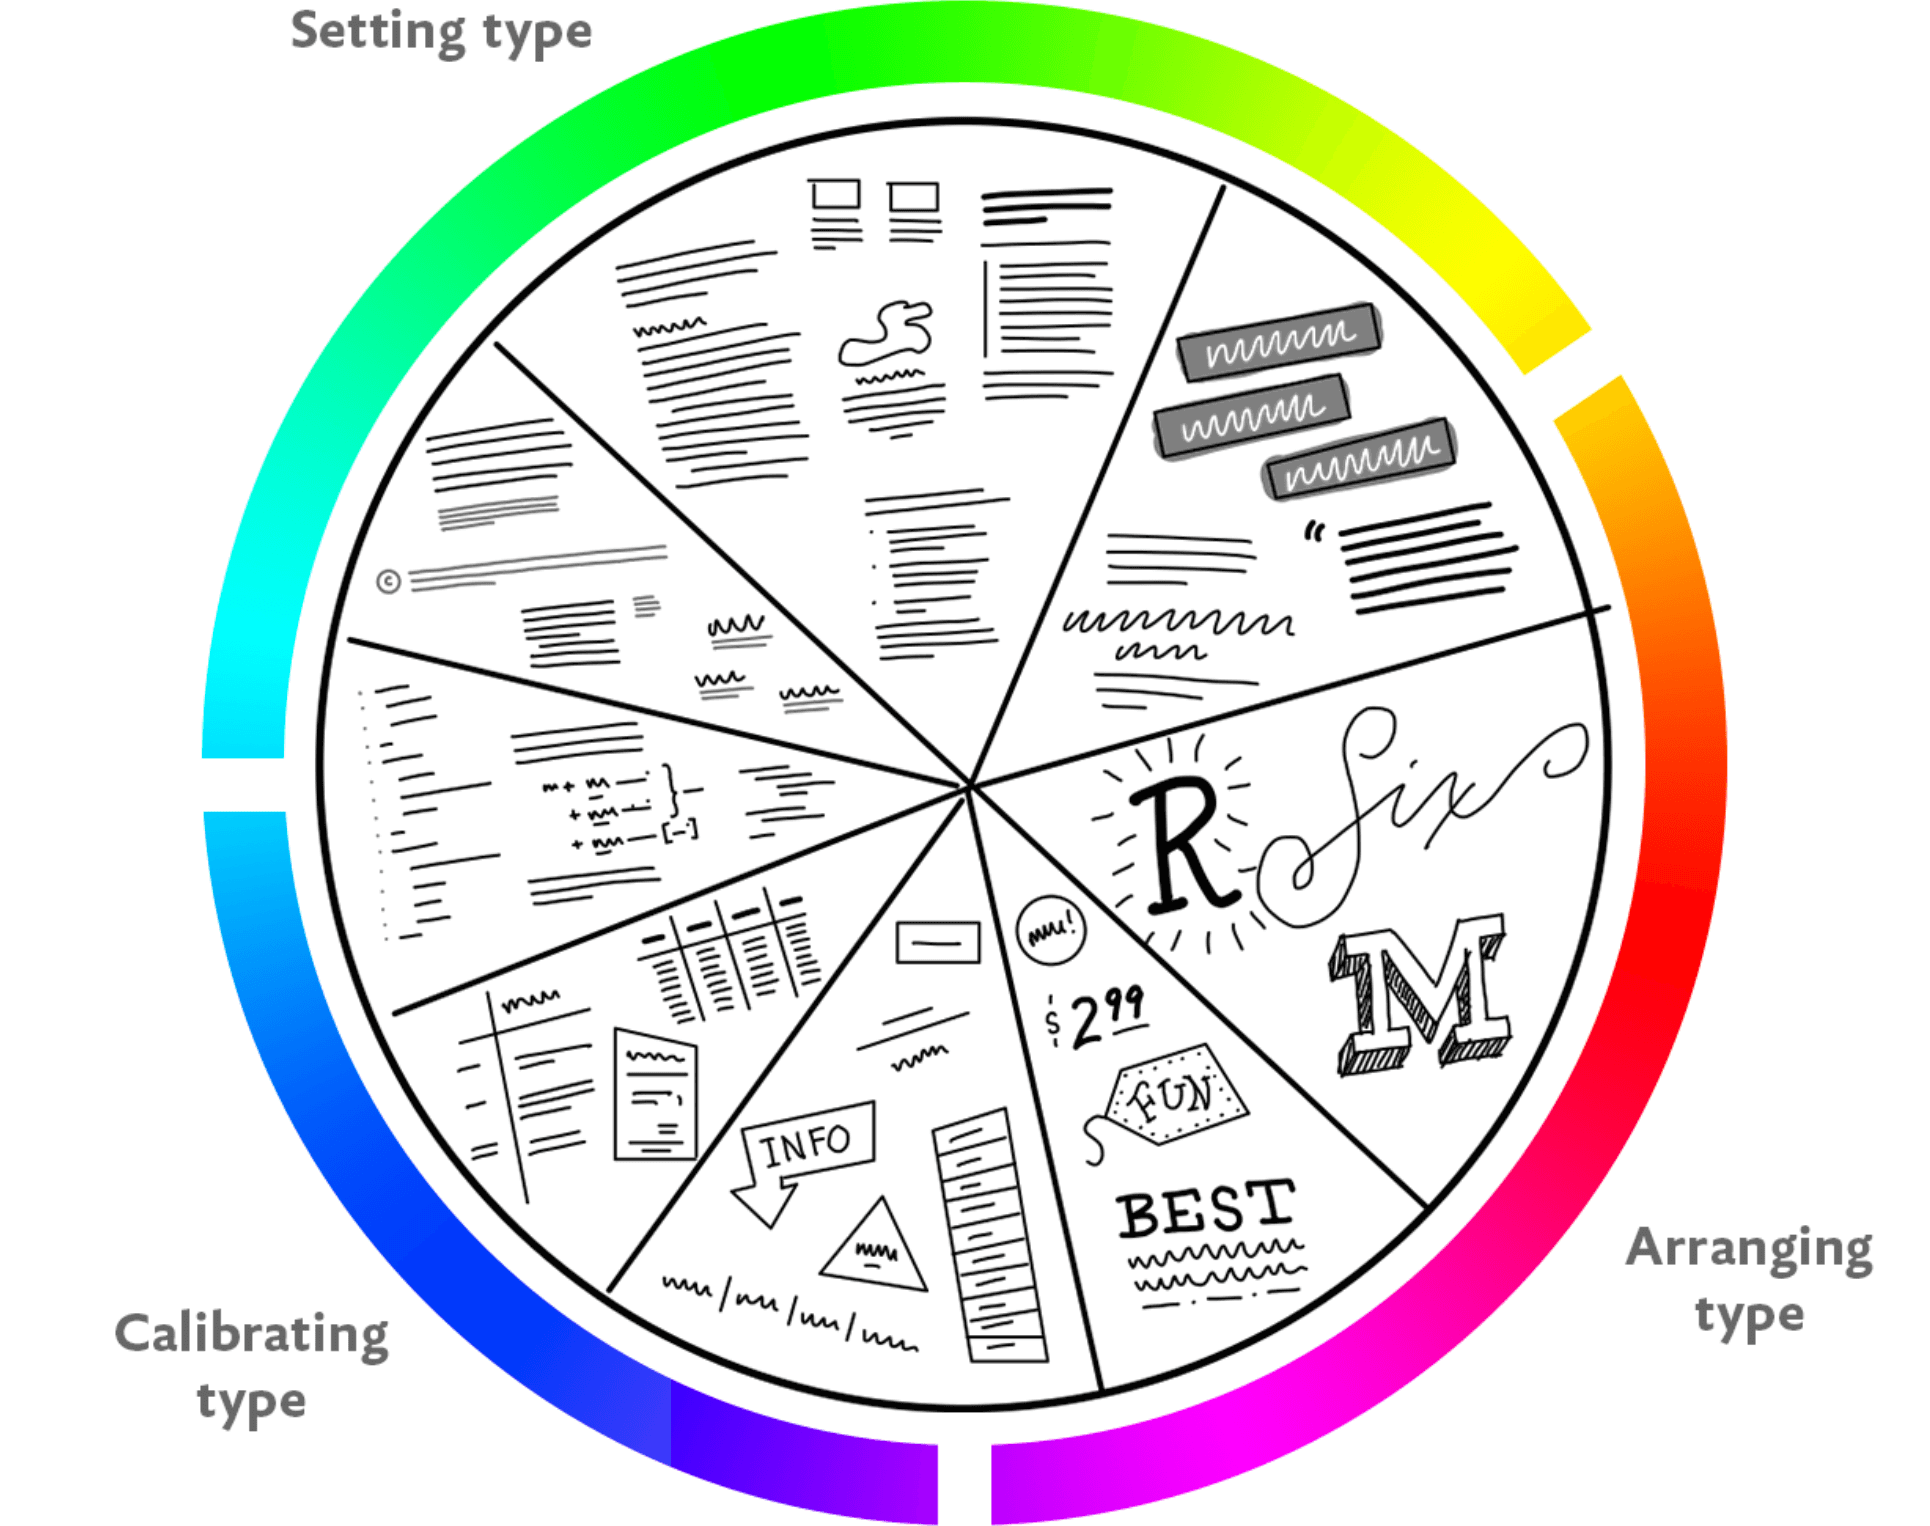 Illustrated typographic activities arranged in a pie chart, aligned with the jobs of setting, aligning, and calibrating text.